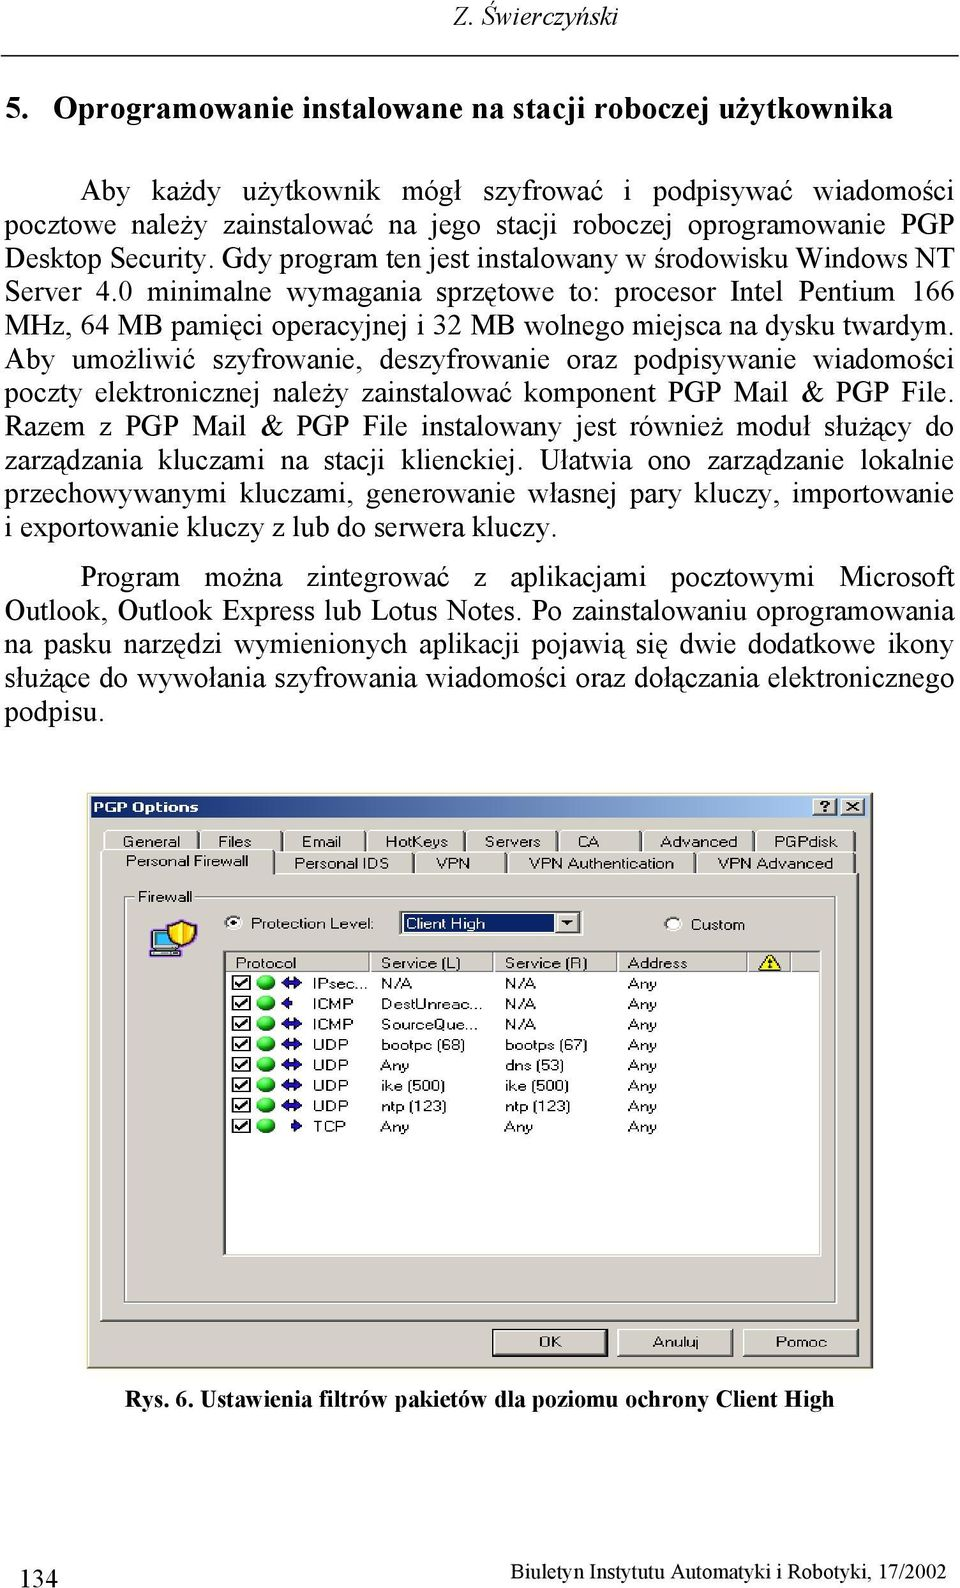 Security. Gdy program ten jest instalowany w środowisku Windows NT Server 4.